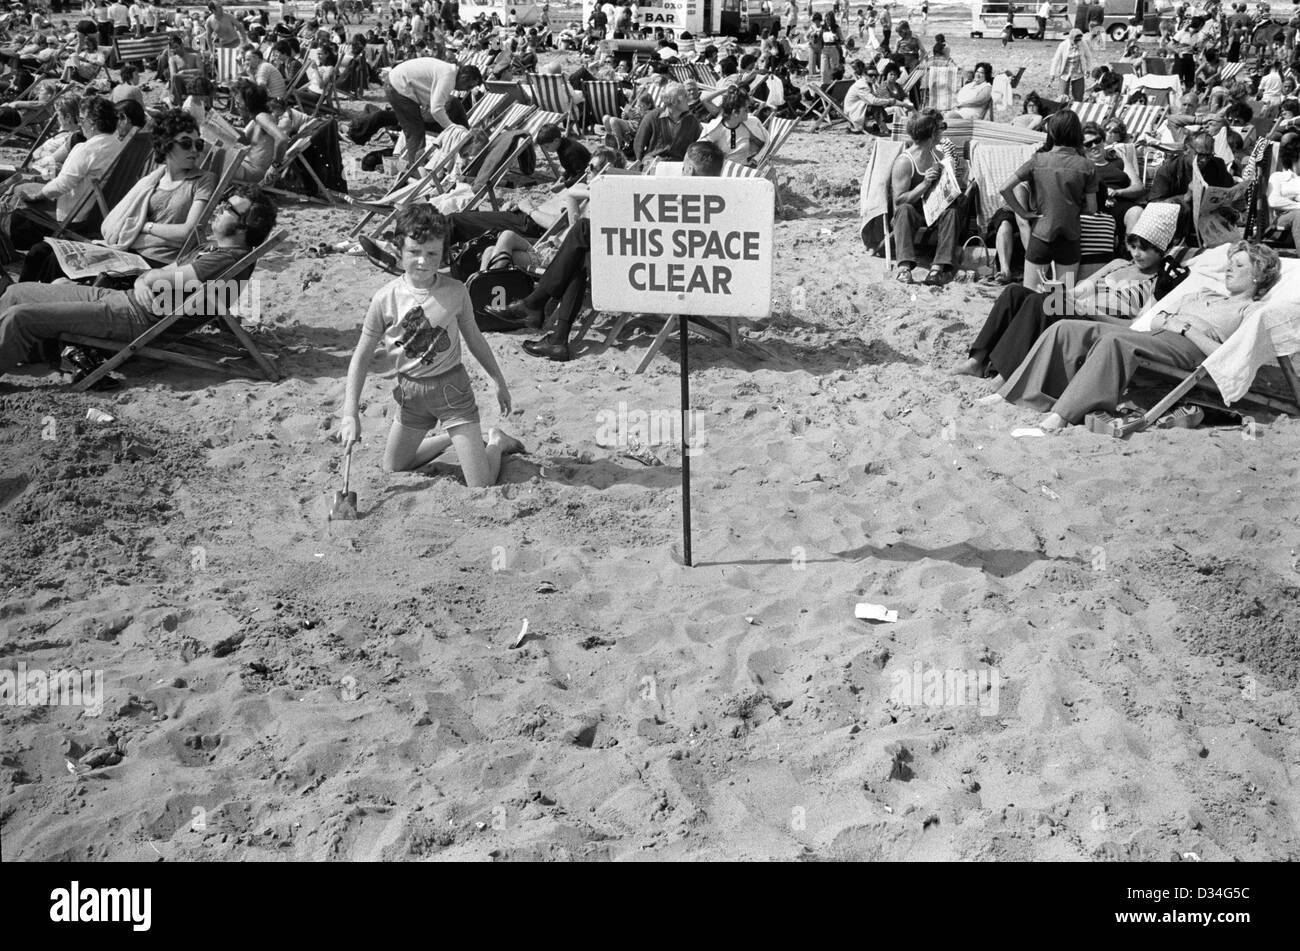 Blackpool beach Lancashire 1970s  Keep This Space Clear, this was for safety and lost children could go to the space - Stock Image